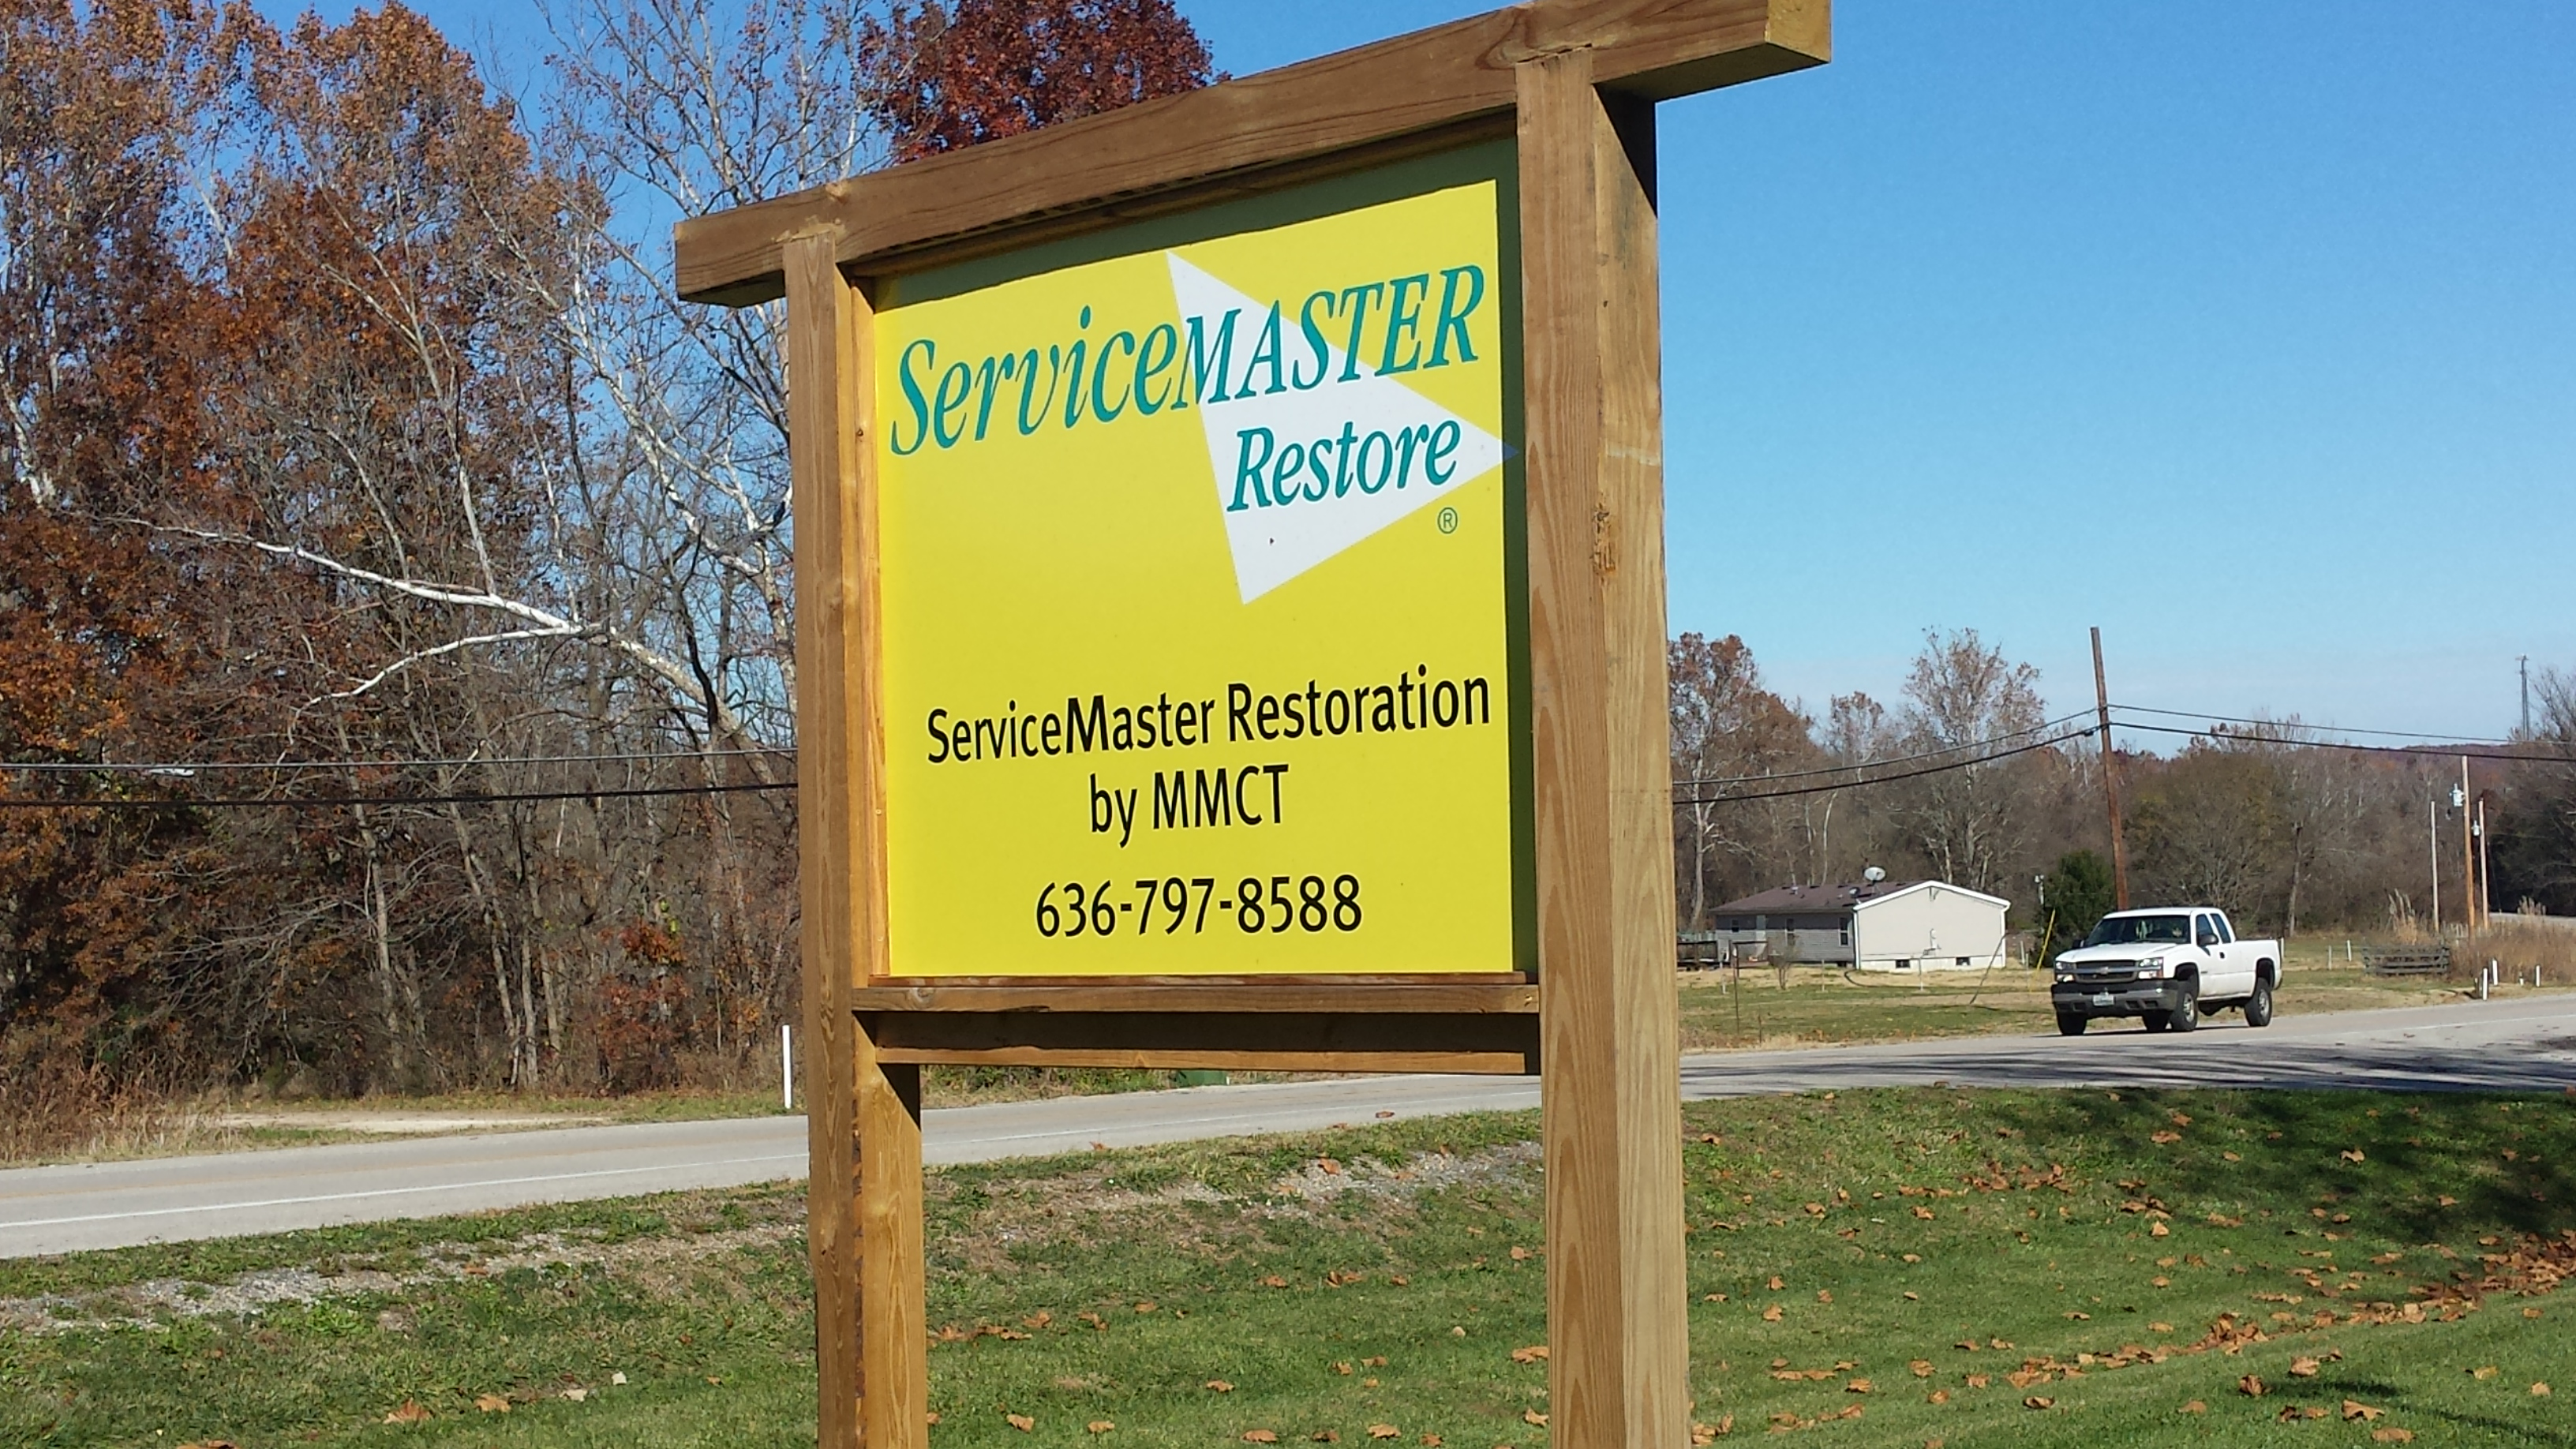 ServiceMaster Restoration by MMCT image 0